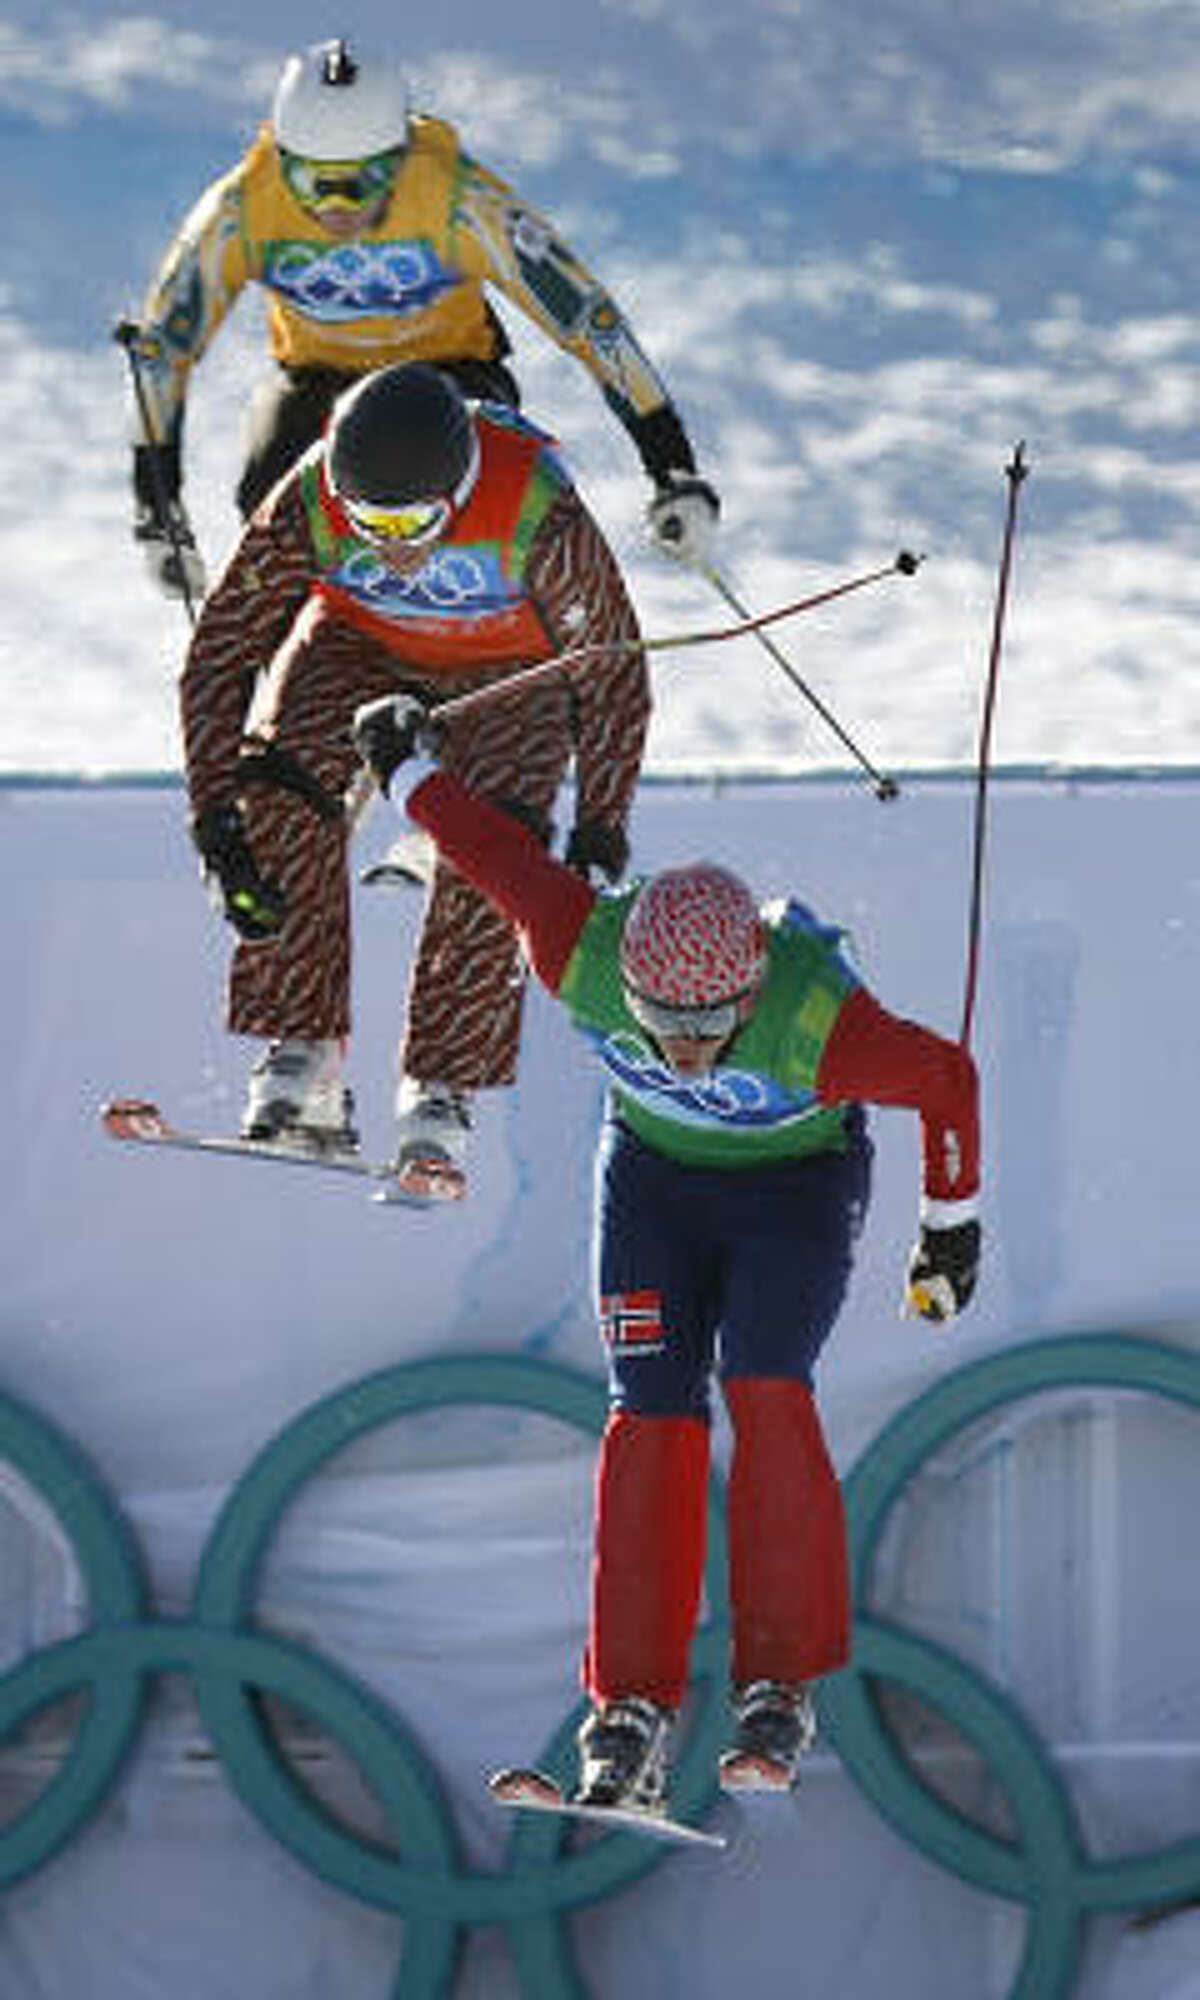 Norway's Audun Groenvold leads Canada's Chris Del Bosco and Scott Kneller of Australia to the finish line in a semifinal race of the men's ski cross competition.